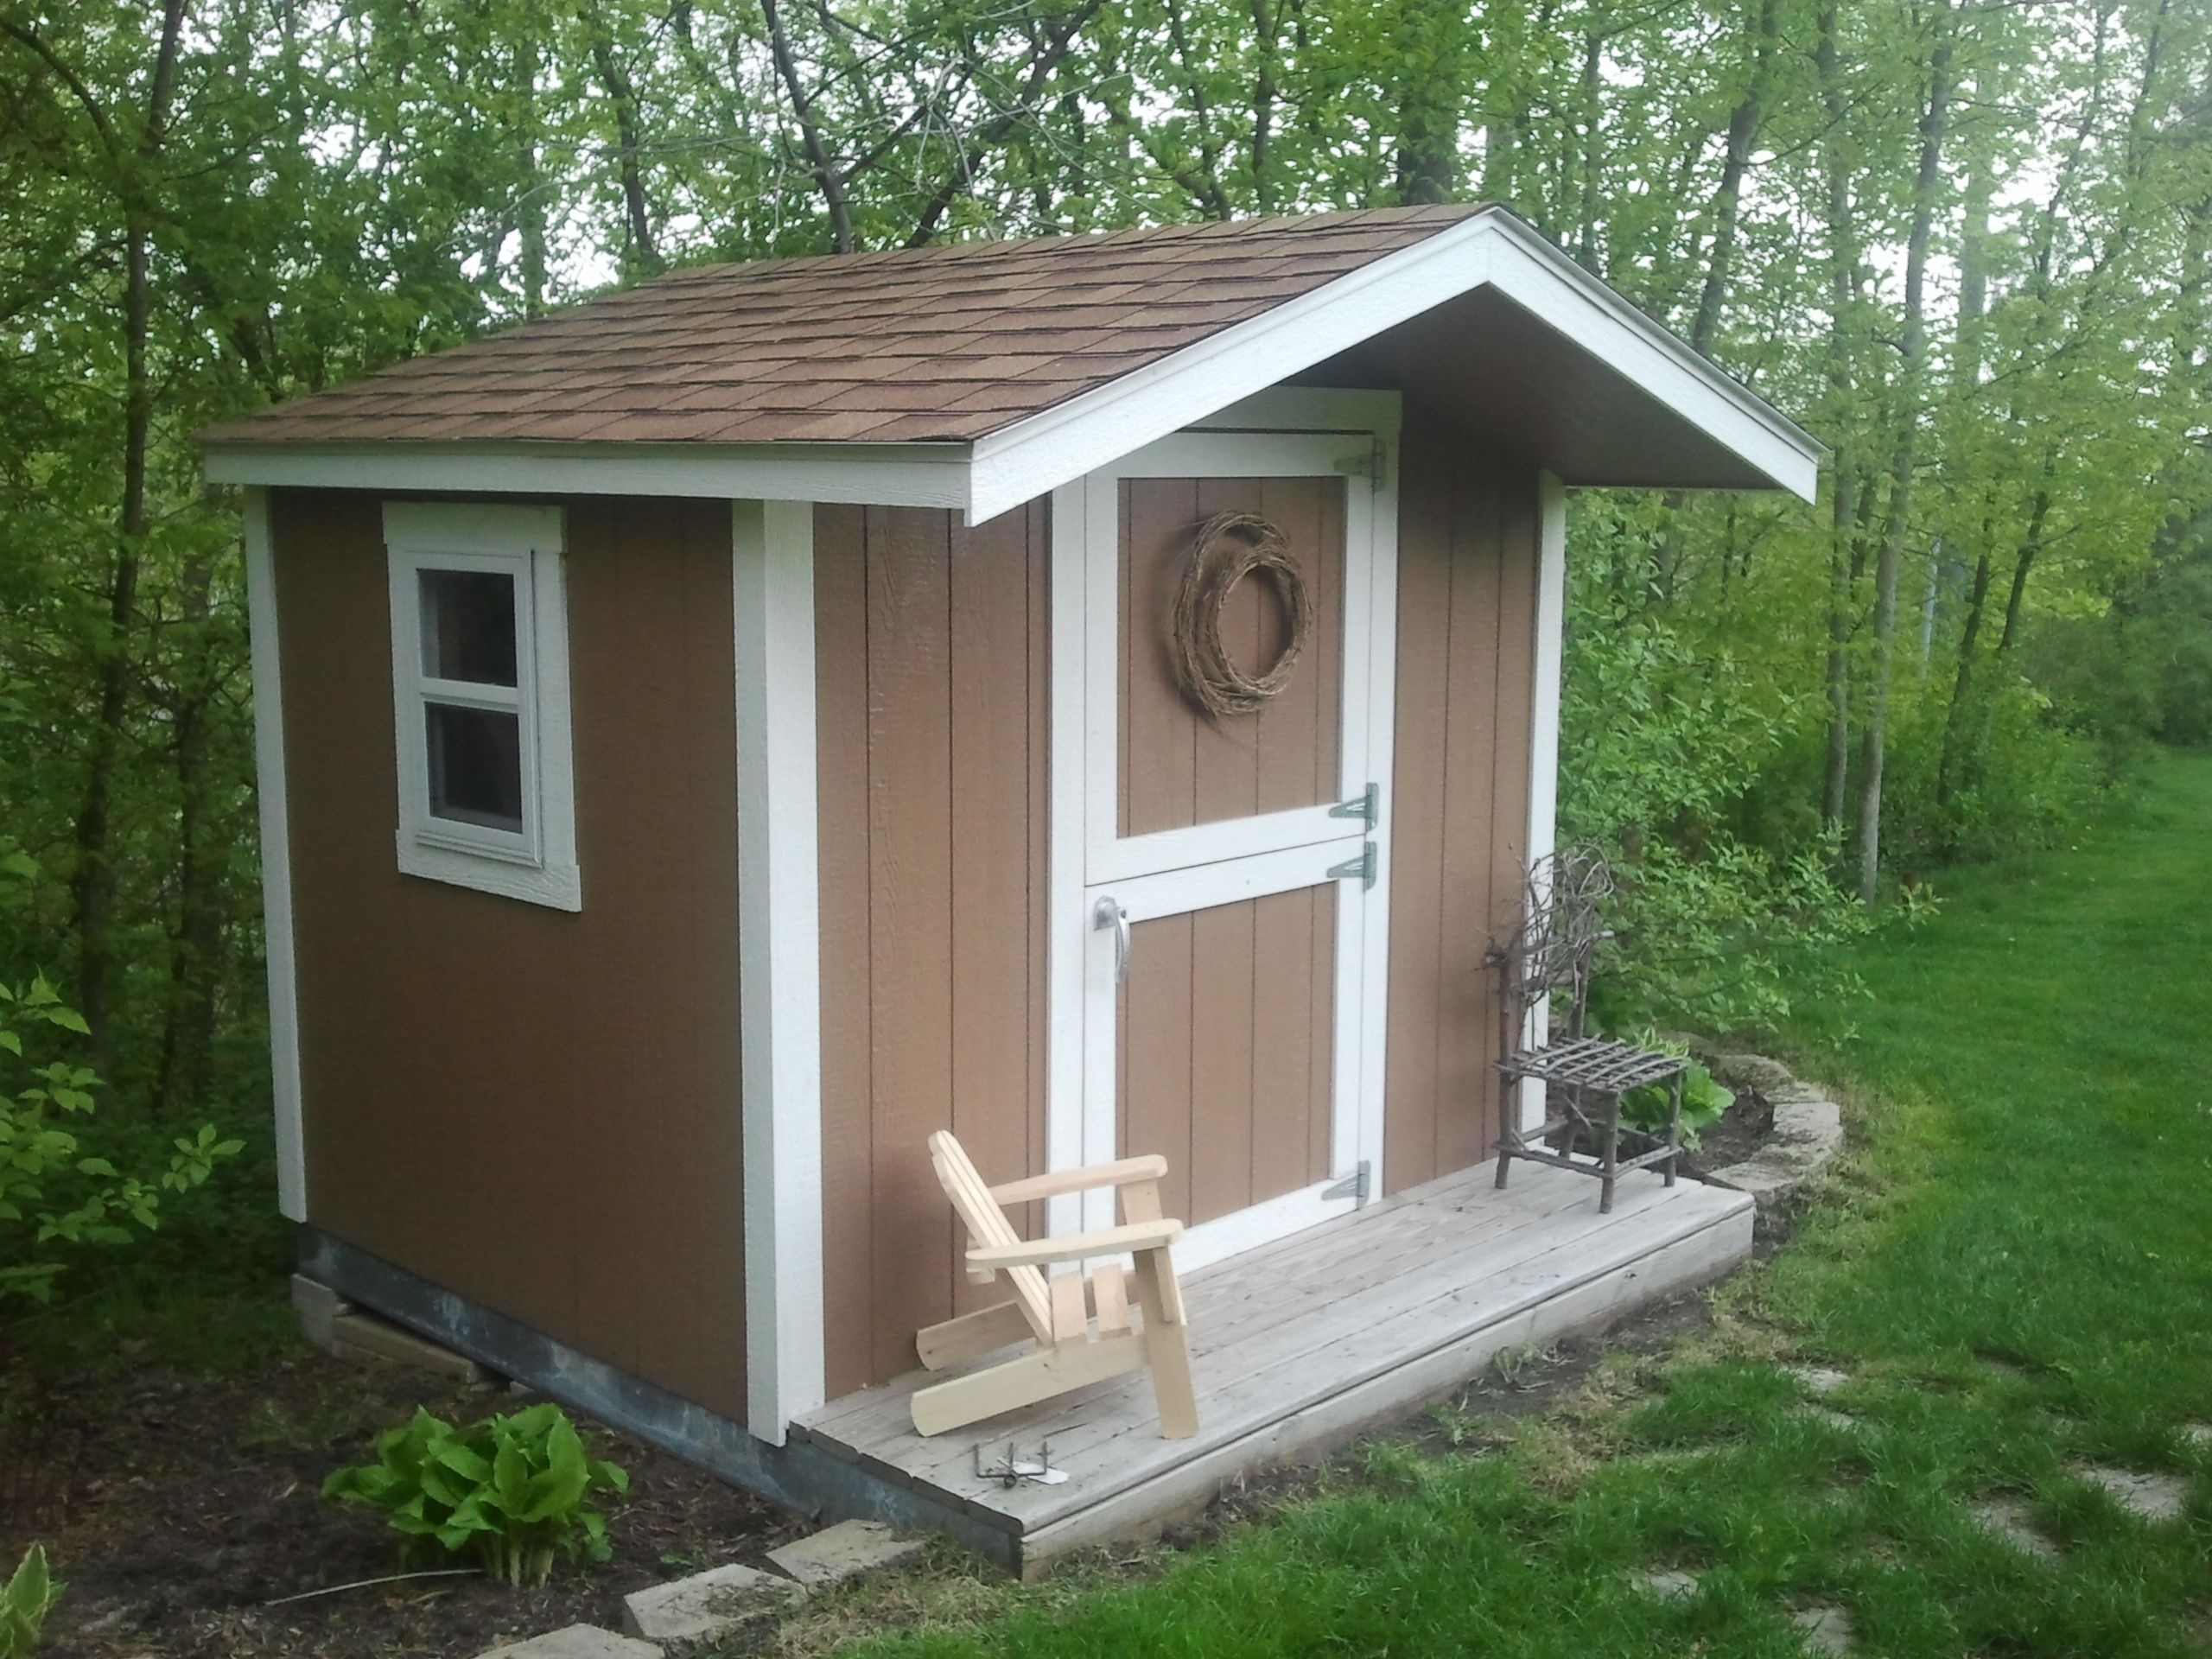 Tuff shed playhouse ordered at home depot tuff shed at for Tuff shed dog house